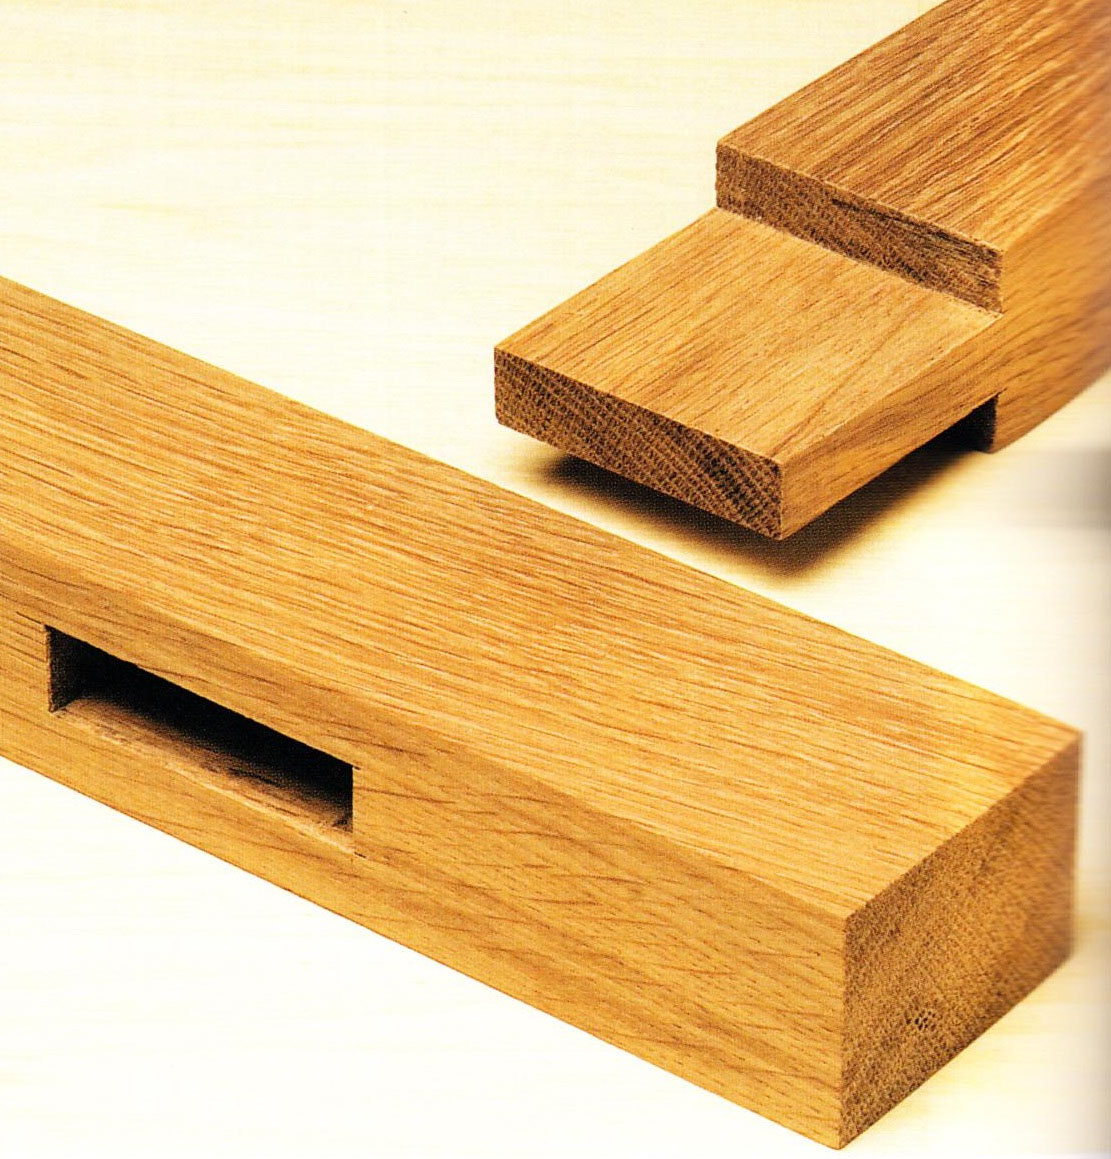 Mortise And Tenon Joint ~ Redwood journal dovetail joints and other things that